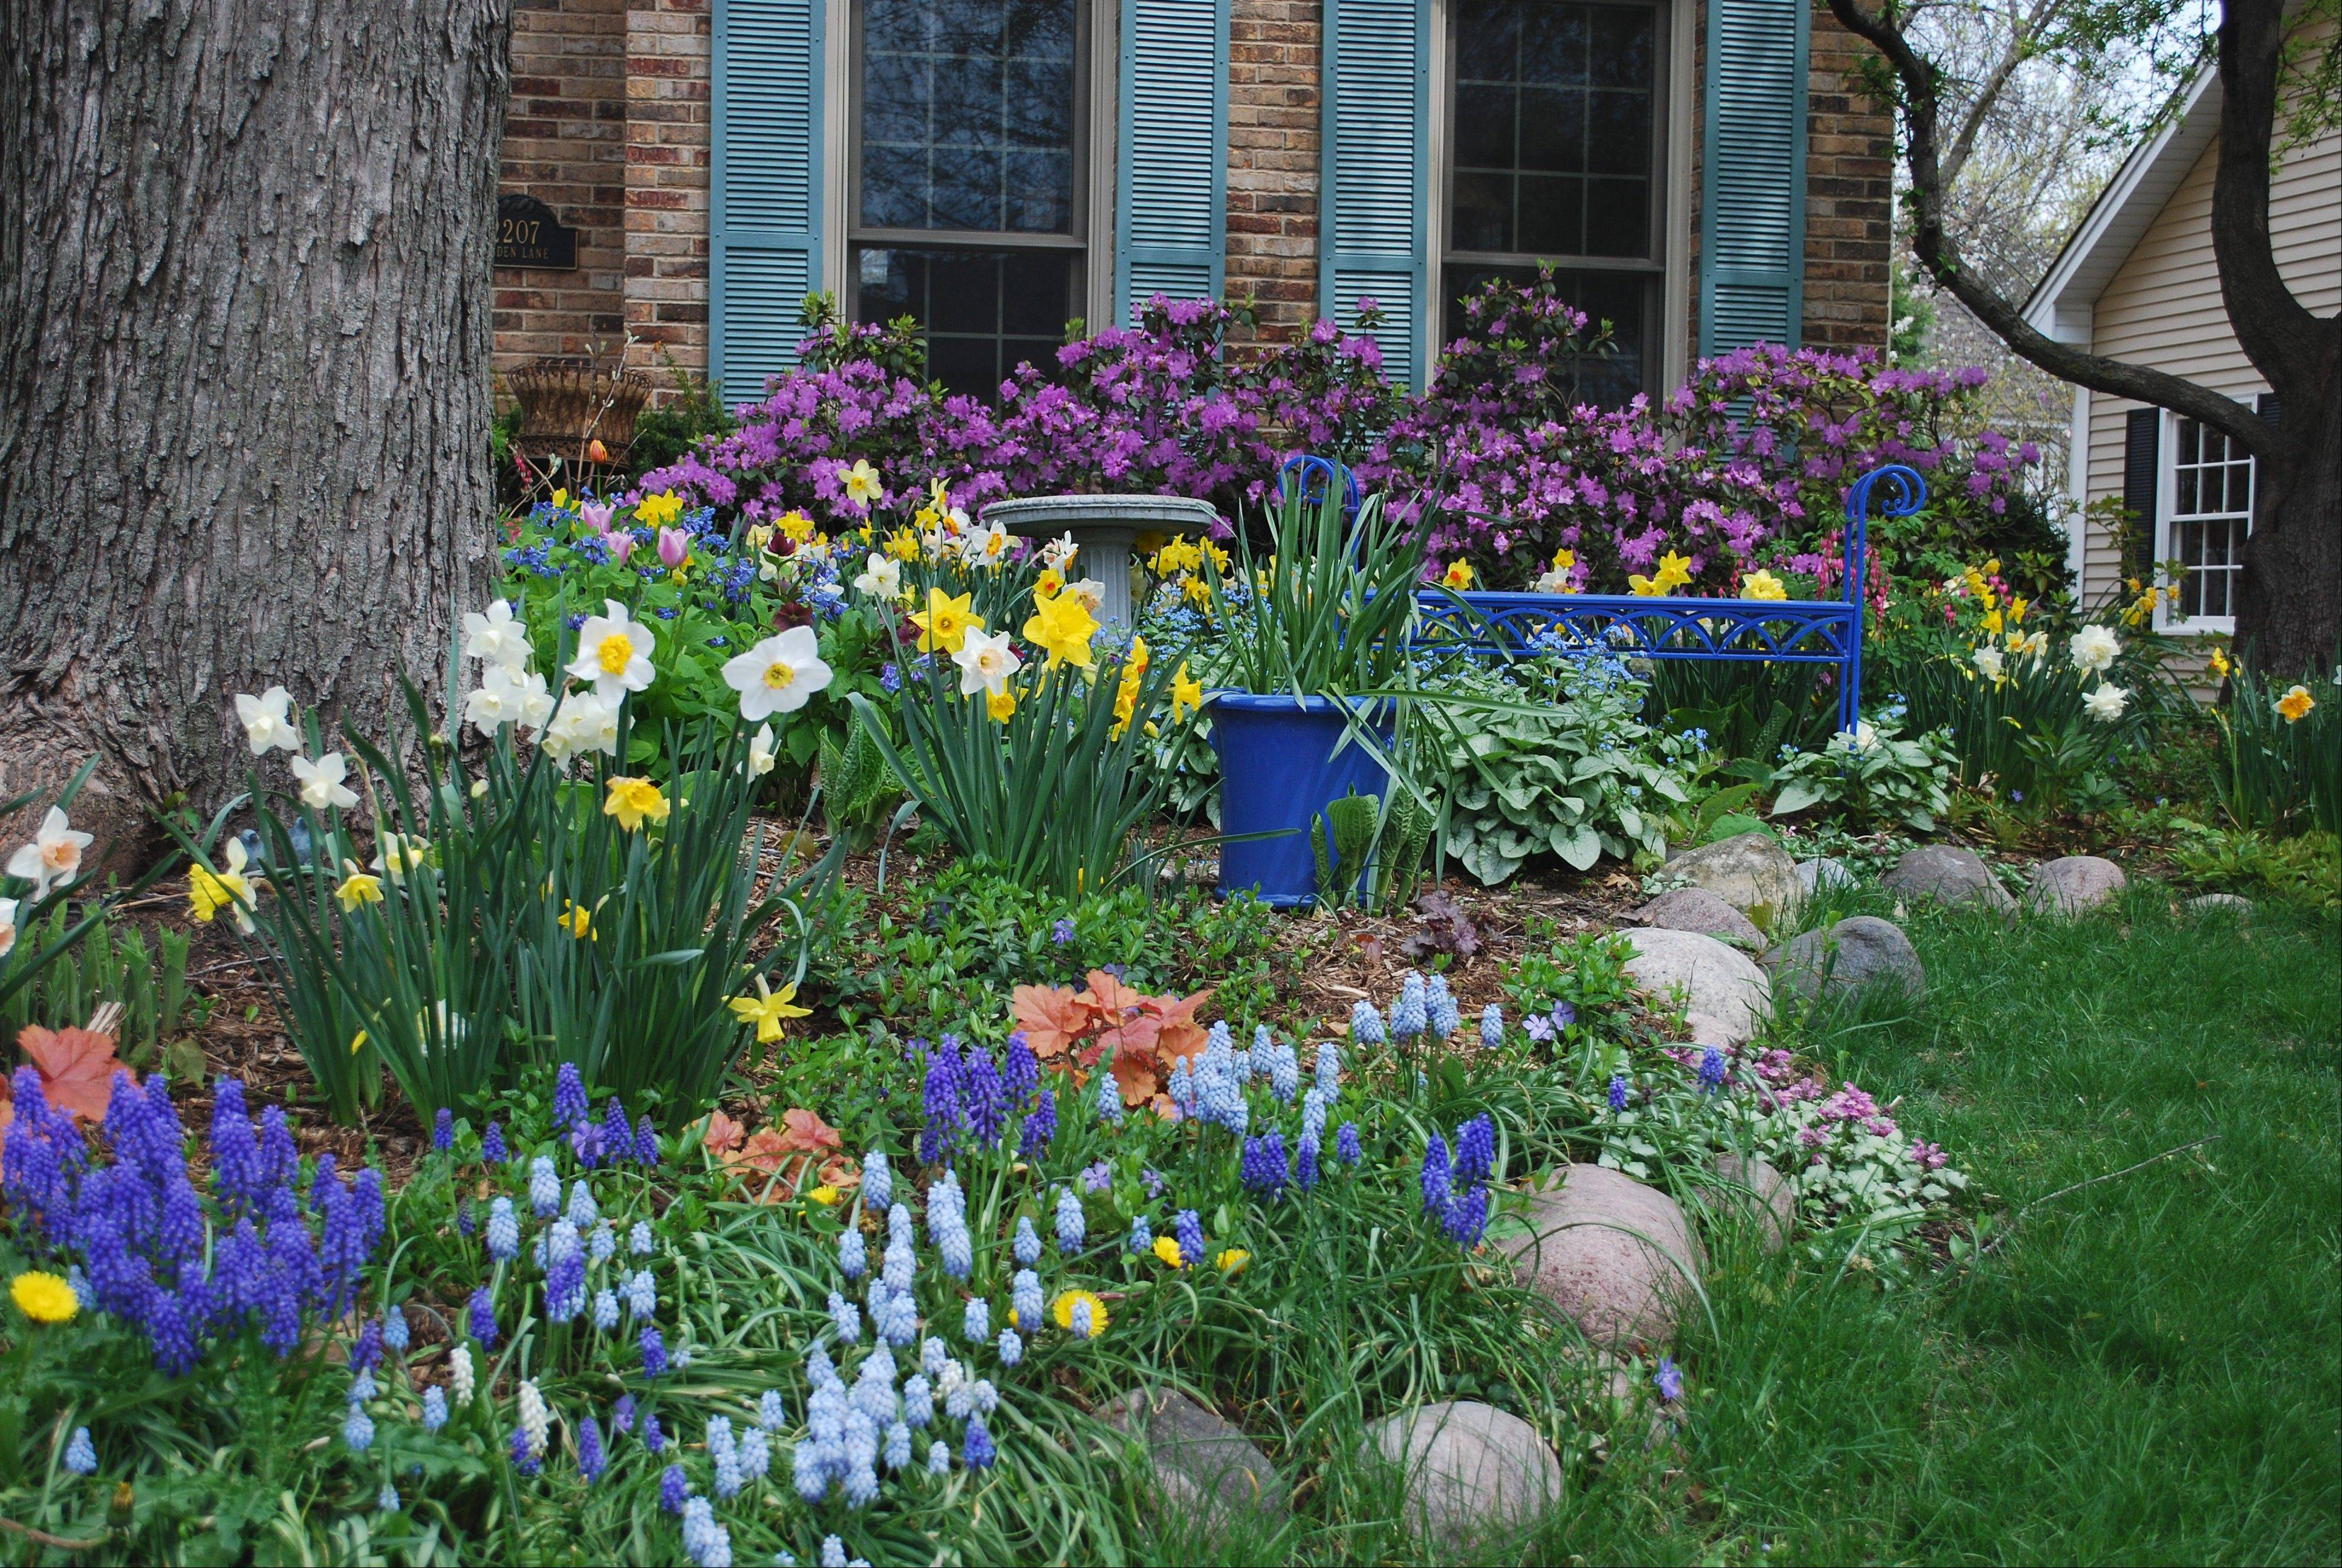 The front of Laura Christensen's Wheaton home comes alive with color in the spring with silver maple at left, a blue bench for relaxing and lots of spring flowers.